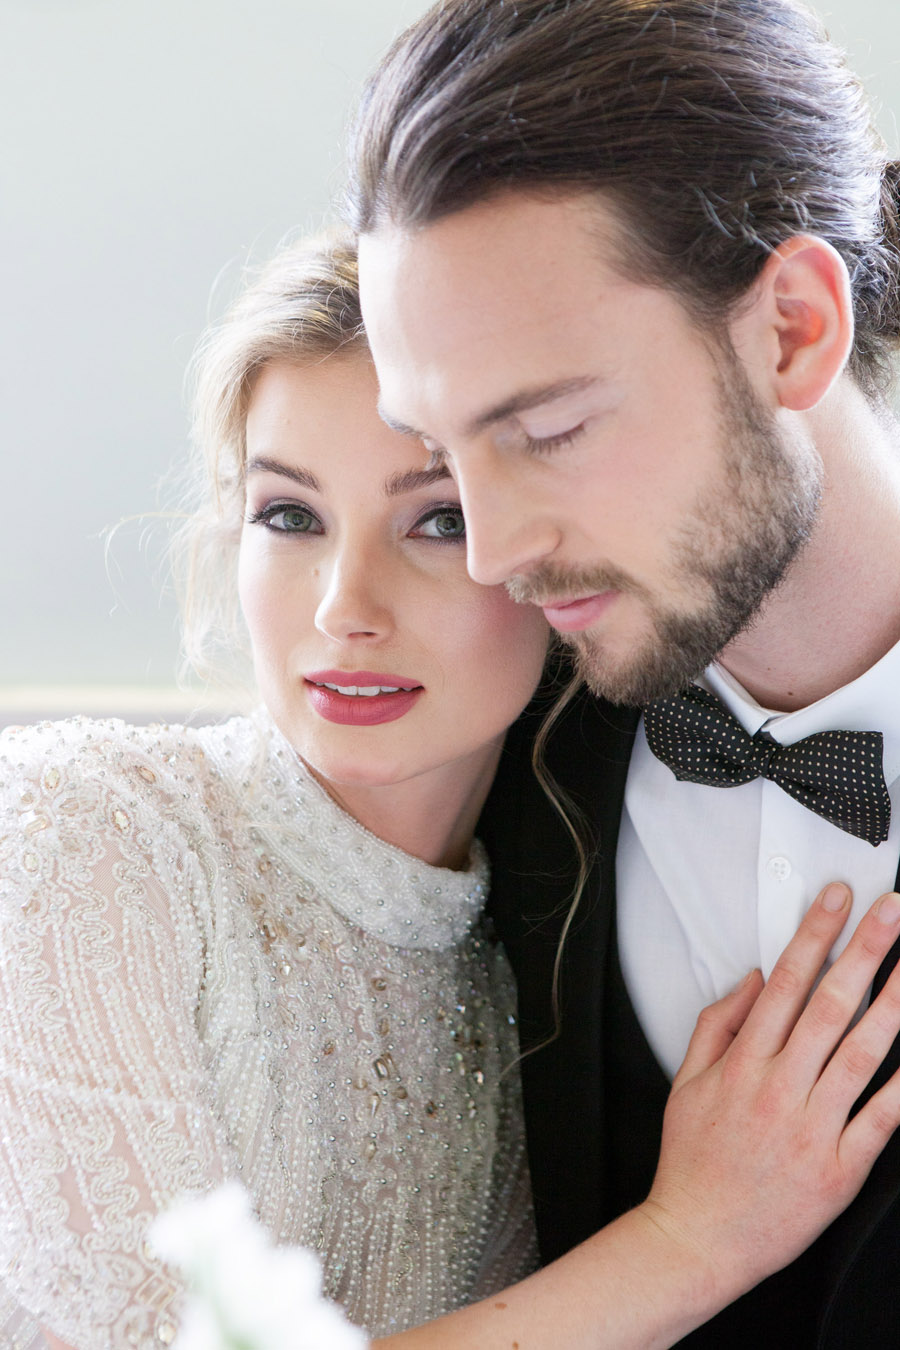 Elegant and timeless wedding look for 2019 brides and grooms, image credit Amanda Karen Photography (26)